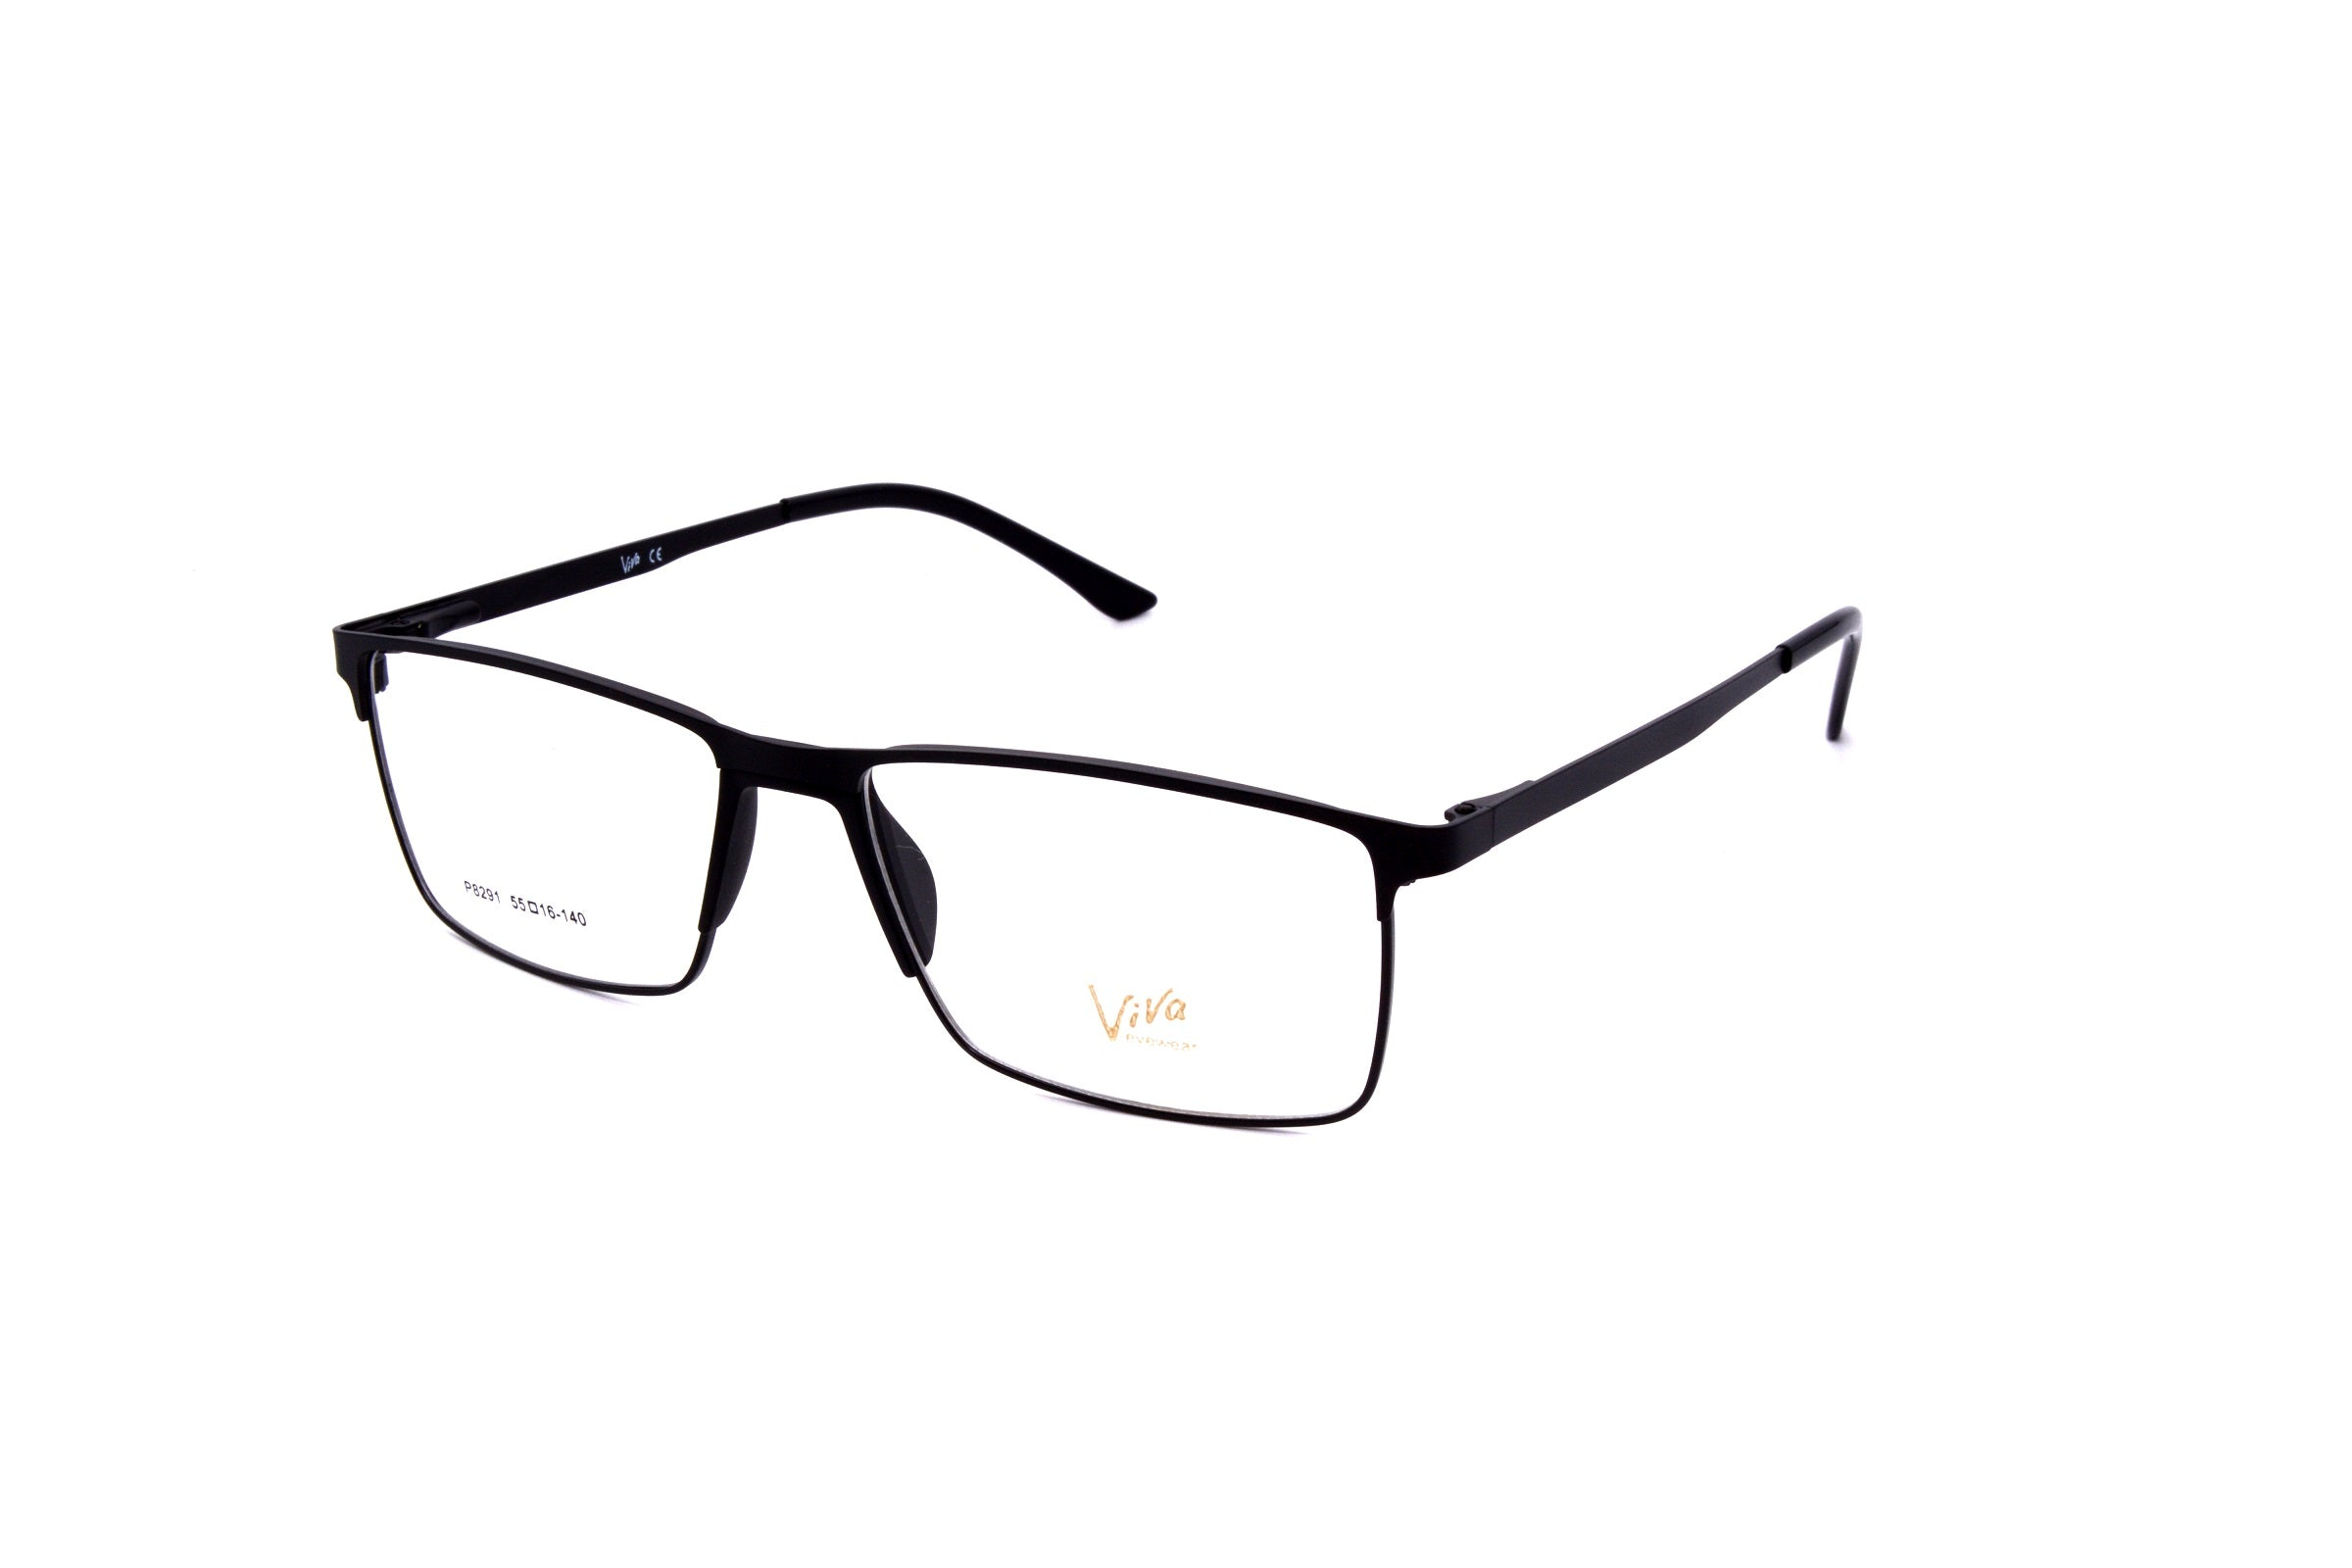 Viva eyewear 8291, M1 - Optics Trading